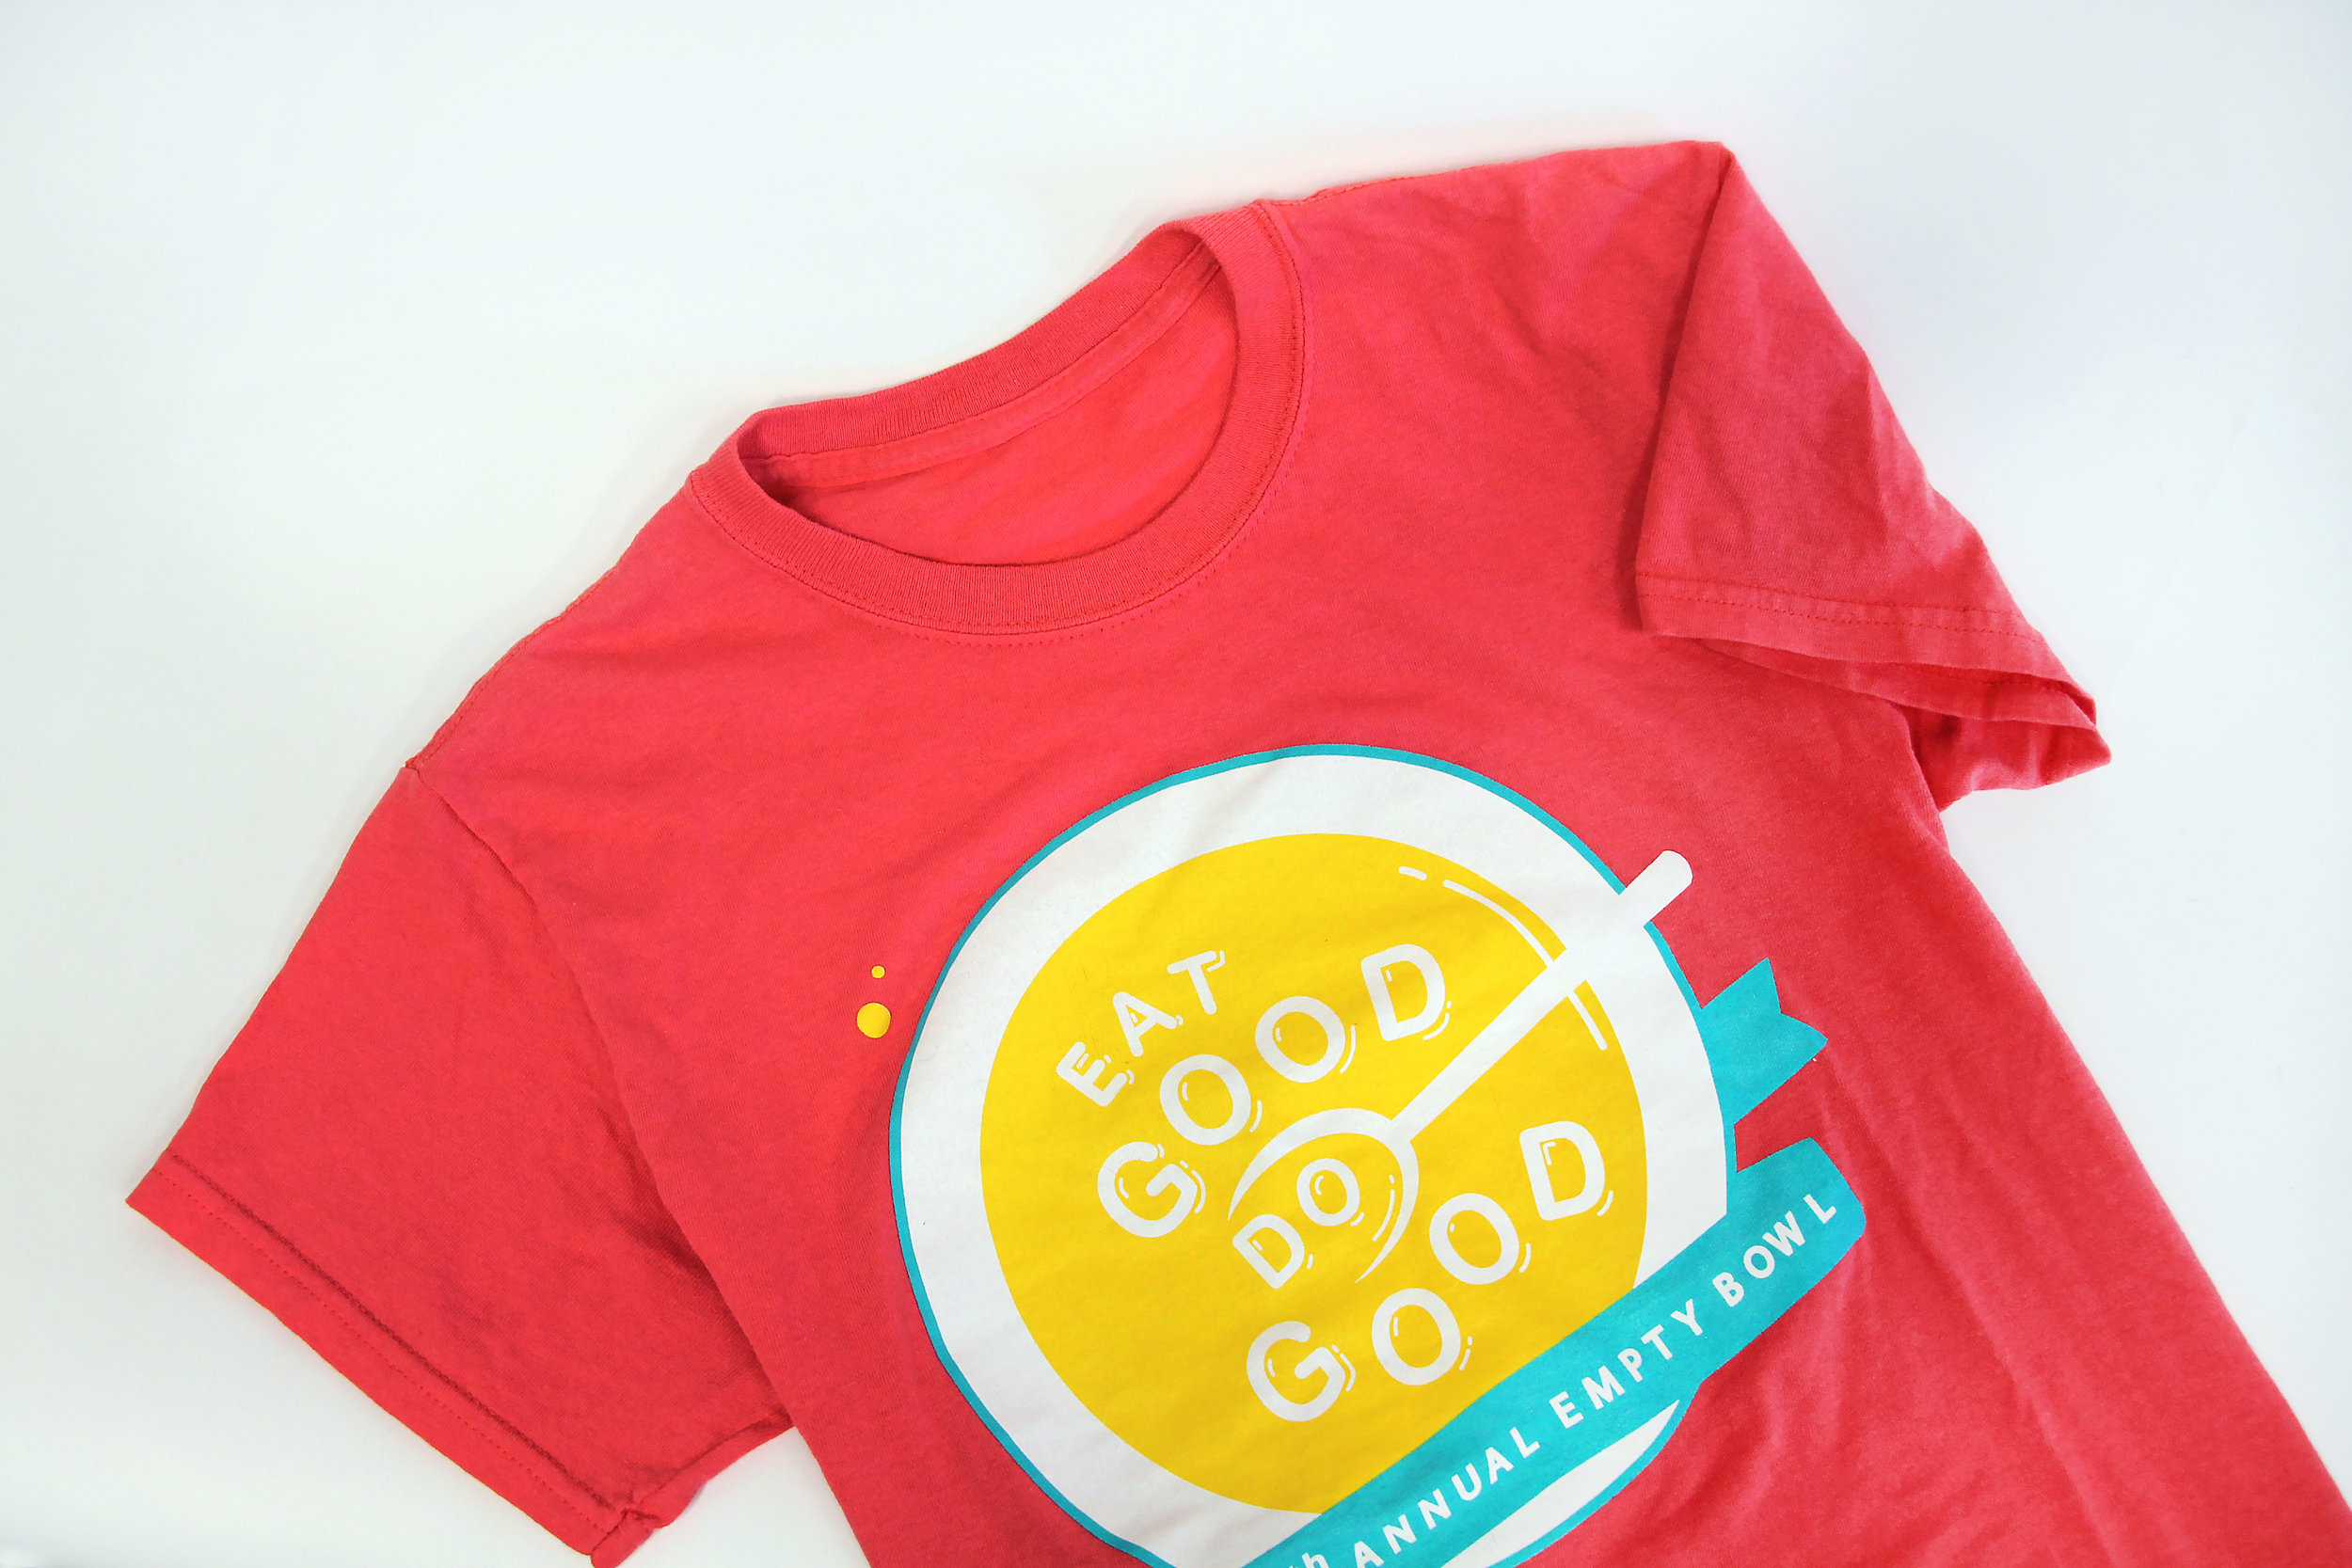 EAT GOOD. DO GOOD. - Empty Bowl is an annual fundraiser where the proceeds benefit Second Harvest Northern Lakes Food Bank in Duluth, Minnesota. For the 25th anniversary theme, I wanted the message to be powerful and clear; Eat good, while doing something good. The design was playfully and optimistically influenced by a classic bowl alphabet soup.